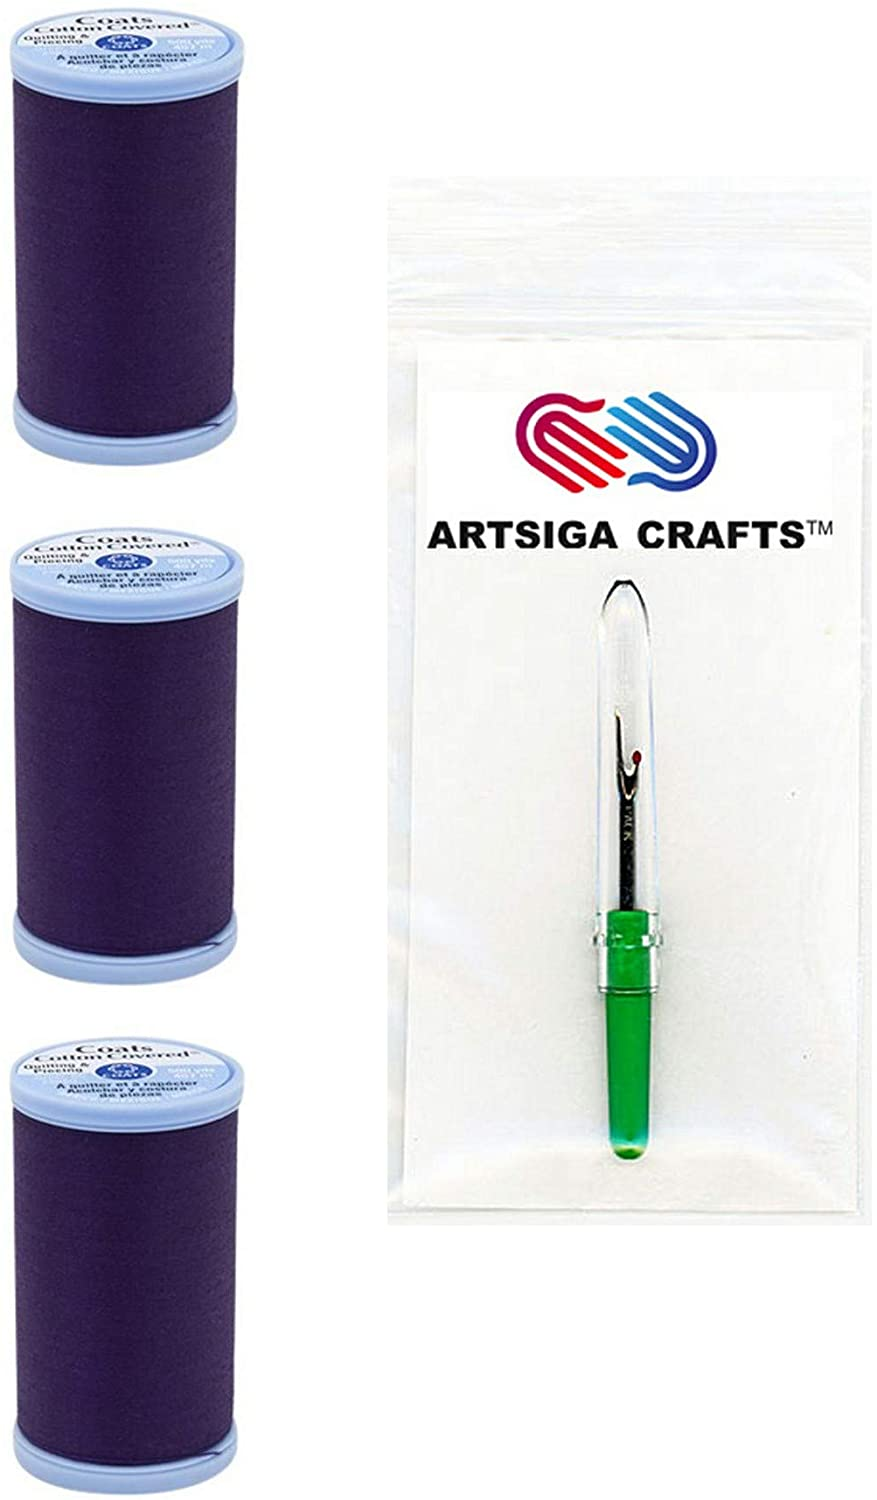 Coats & Clark Sewing Thread Quilting & Piecing Cotton Covered Thread 500 Yards (3-Pack) Purple Bundle with 1 Artsiga Crafts Seam Ripper S926-3690-3P